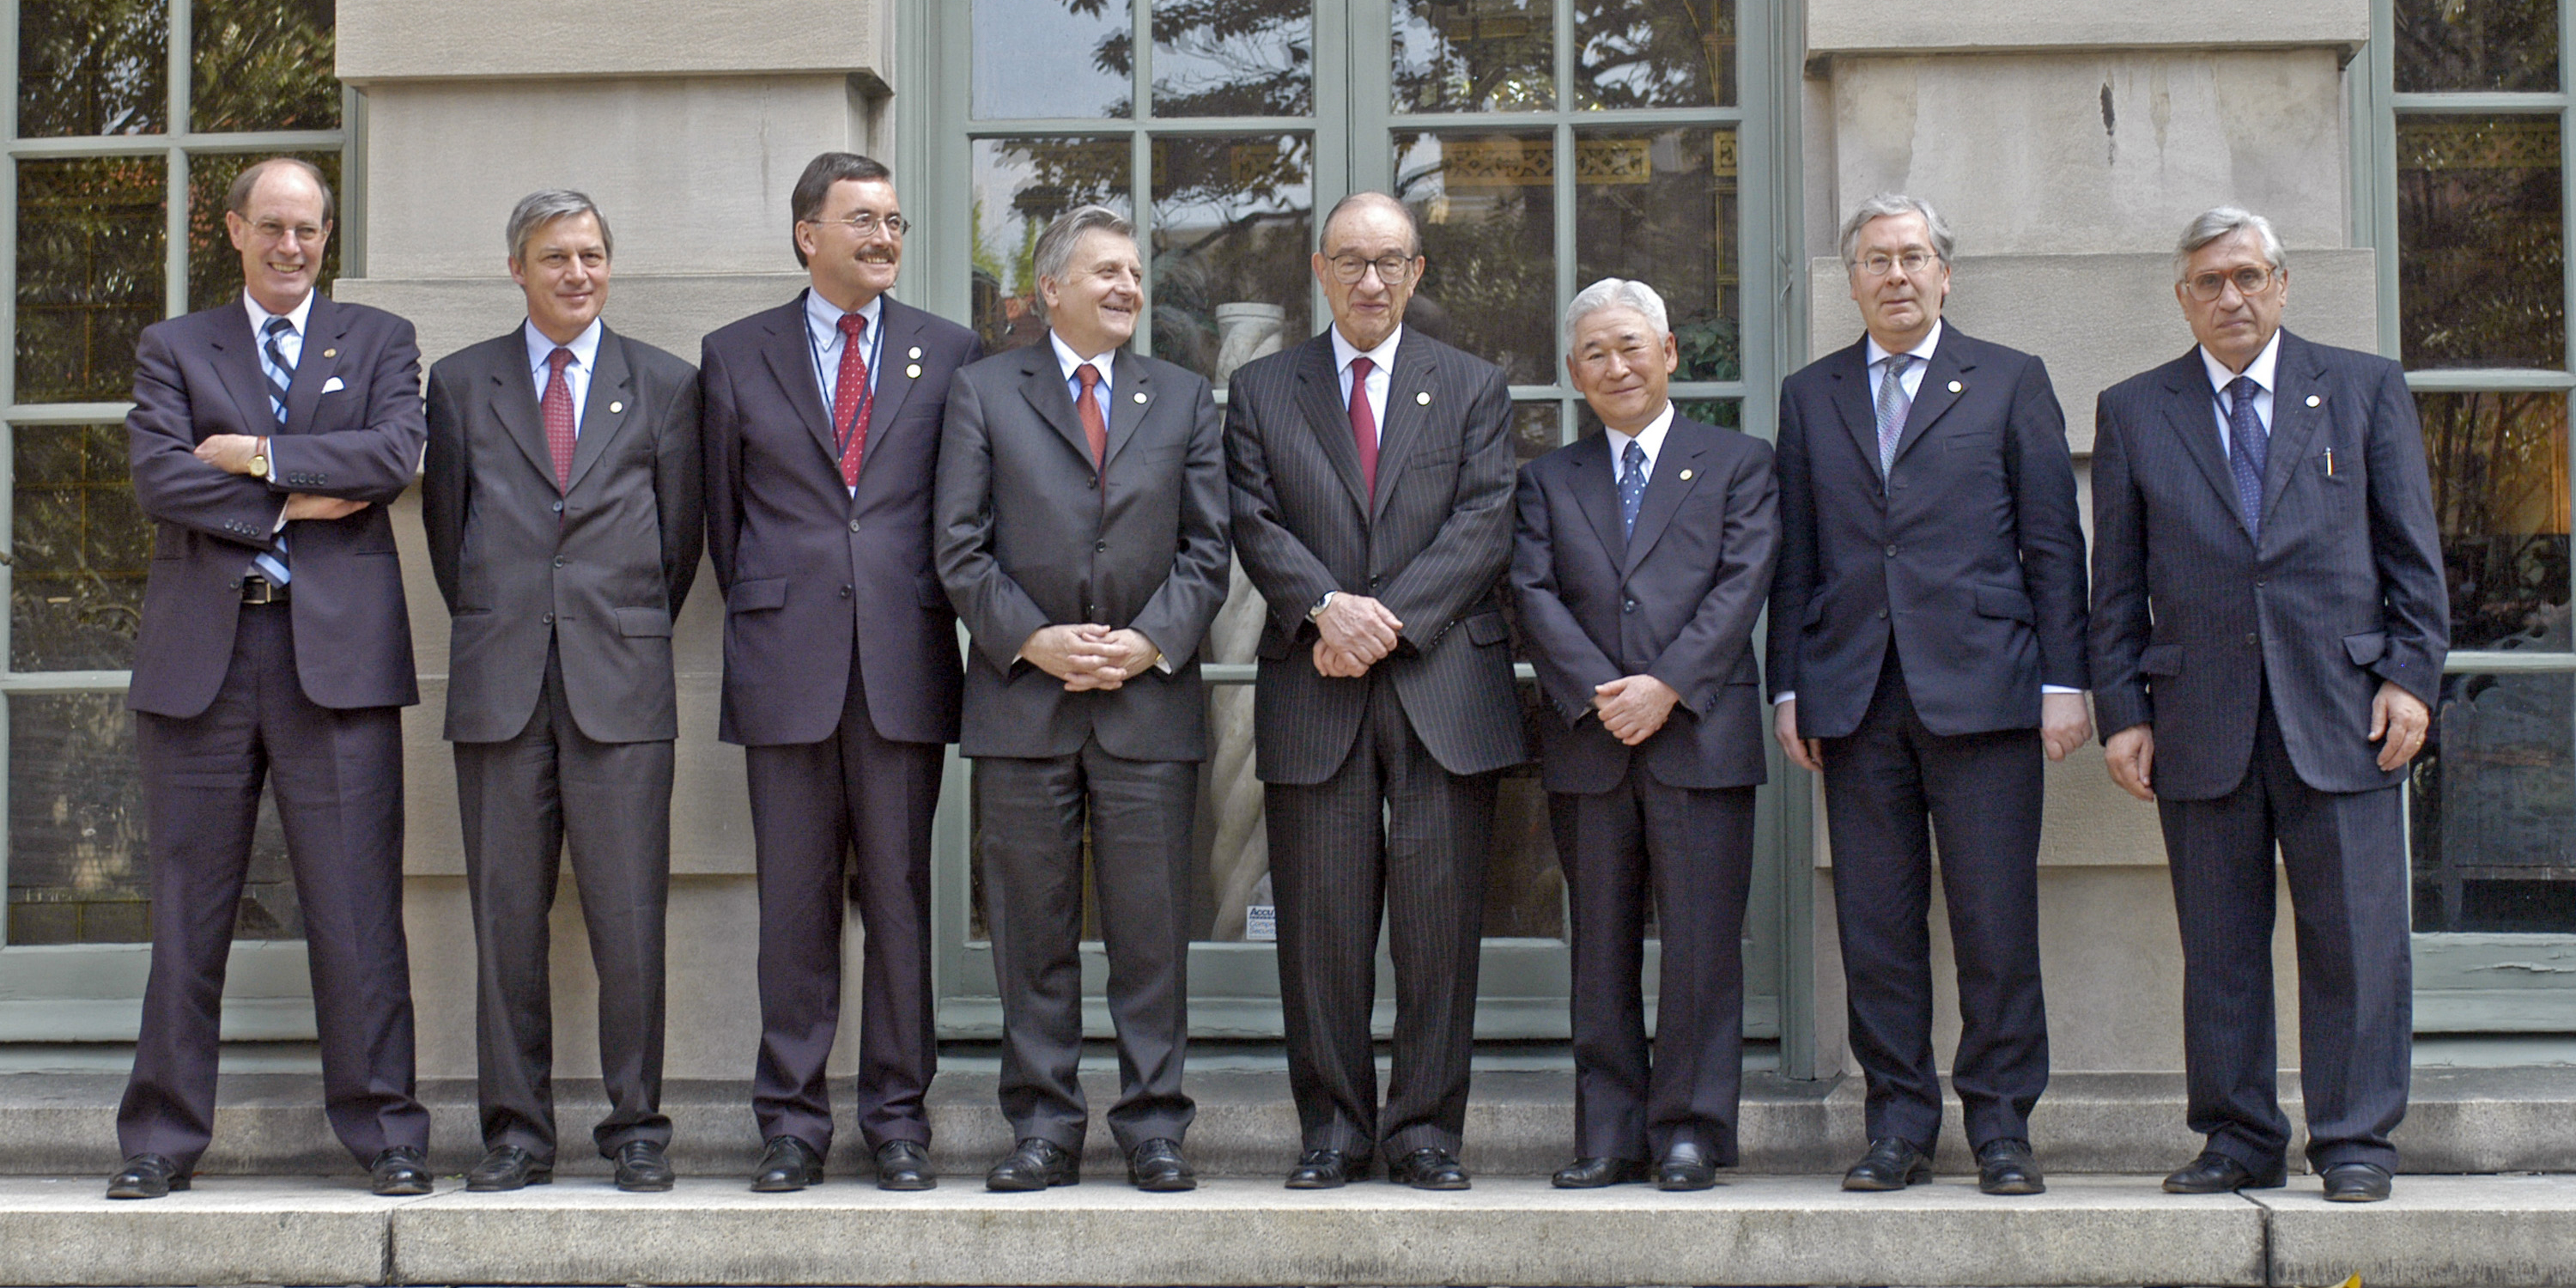 Central Bank members gather for a G-7 meeting in Washington in April 2004, including David Dodge of Canada, Christian Noyer of France, Bundesbank vice-president Juergen Stark of Germany, Jean Claude Trichet President of the European Central Bank, Chairman of the Federal Reserve Alan Greenspan, Bank of Japan Governor Toshihiko Fukui, Mervin King of the United Kingdom, and Antonio Fazio of Italy.